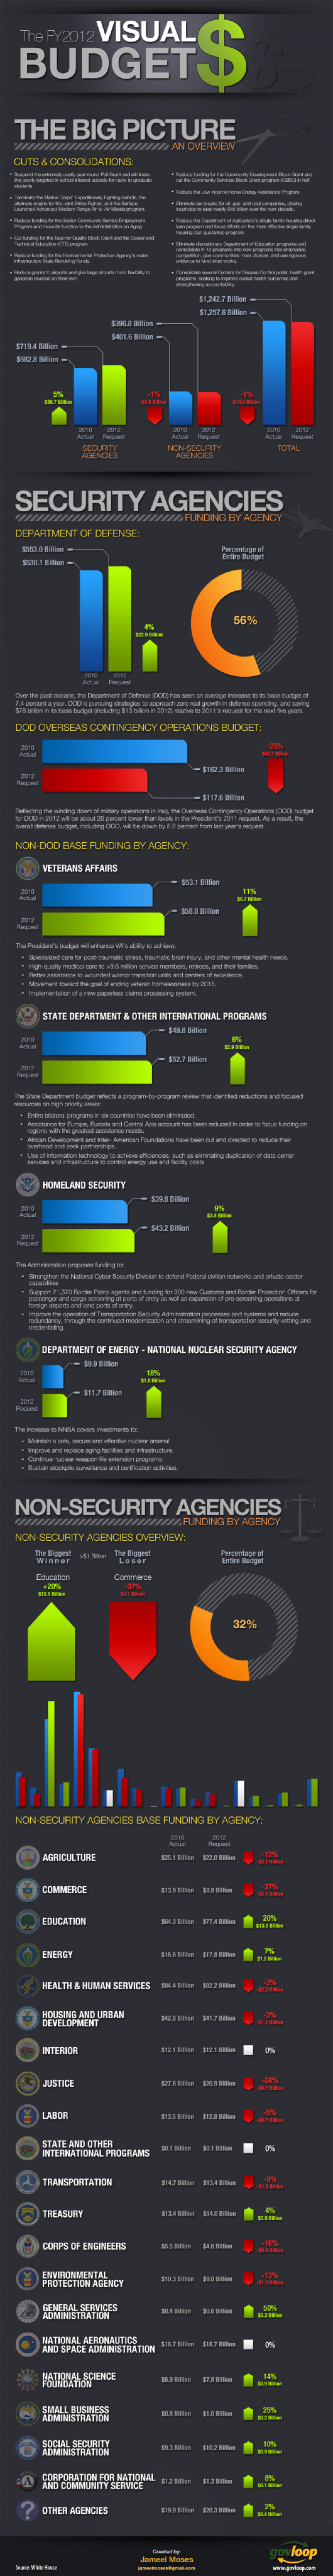 Visualizing the FY2012 Federal Budget  Infographic